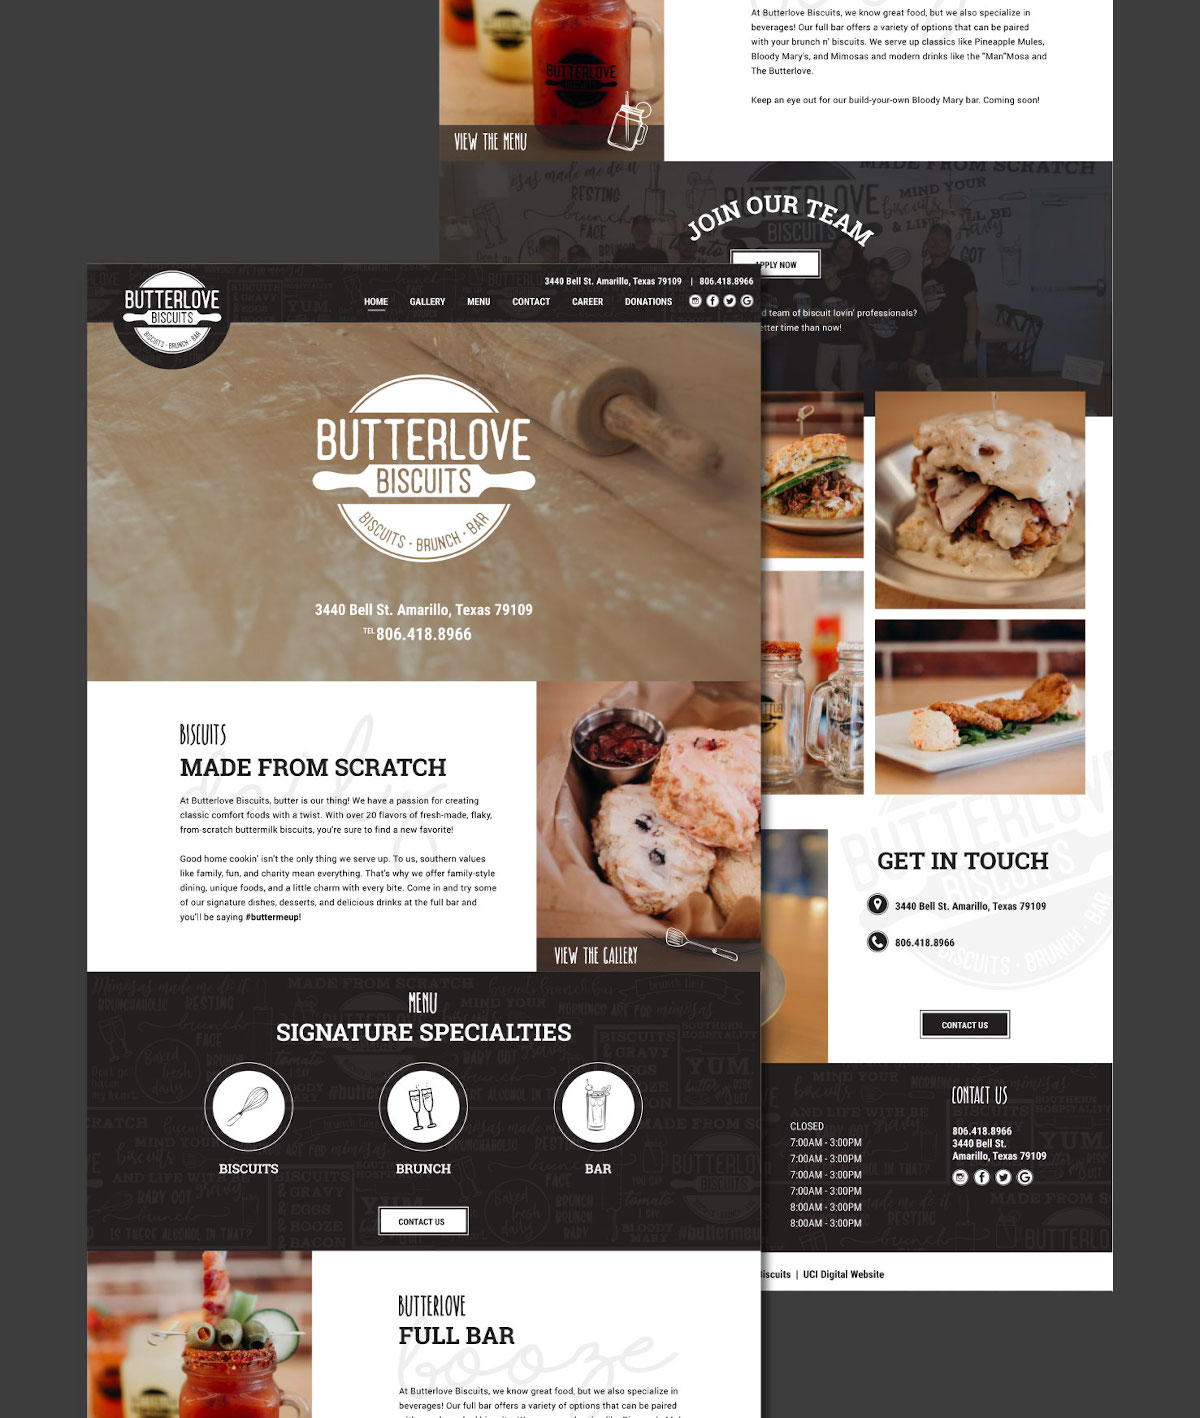 Butterlove Biscuits Website Preview